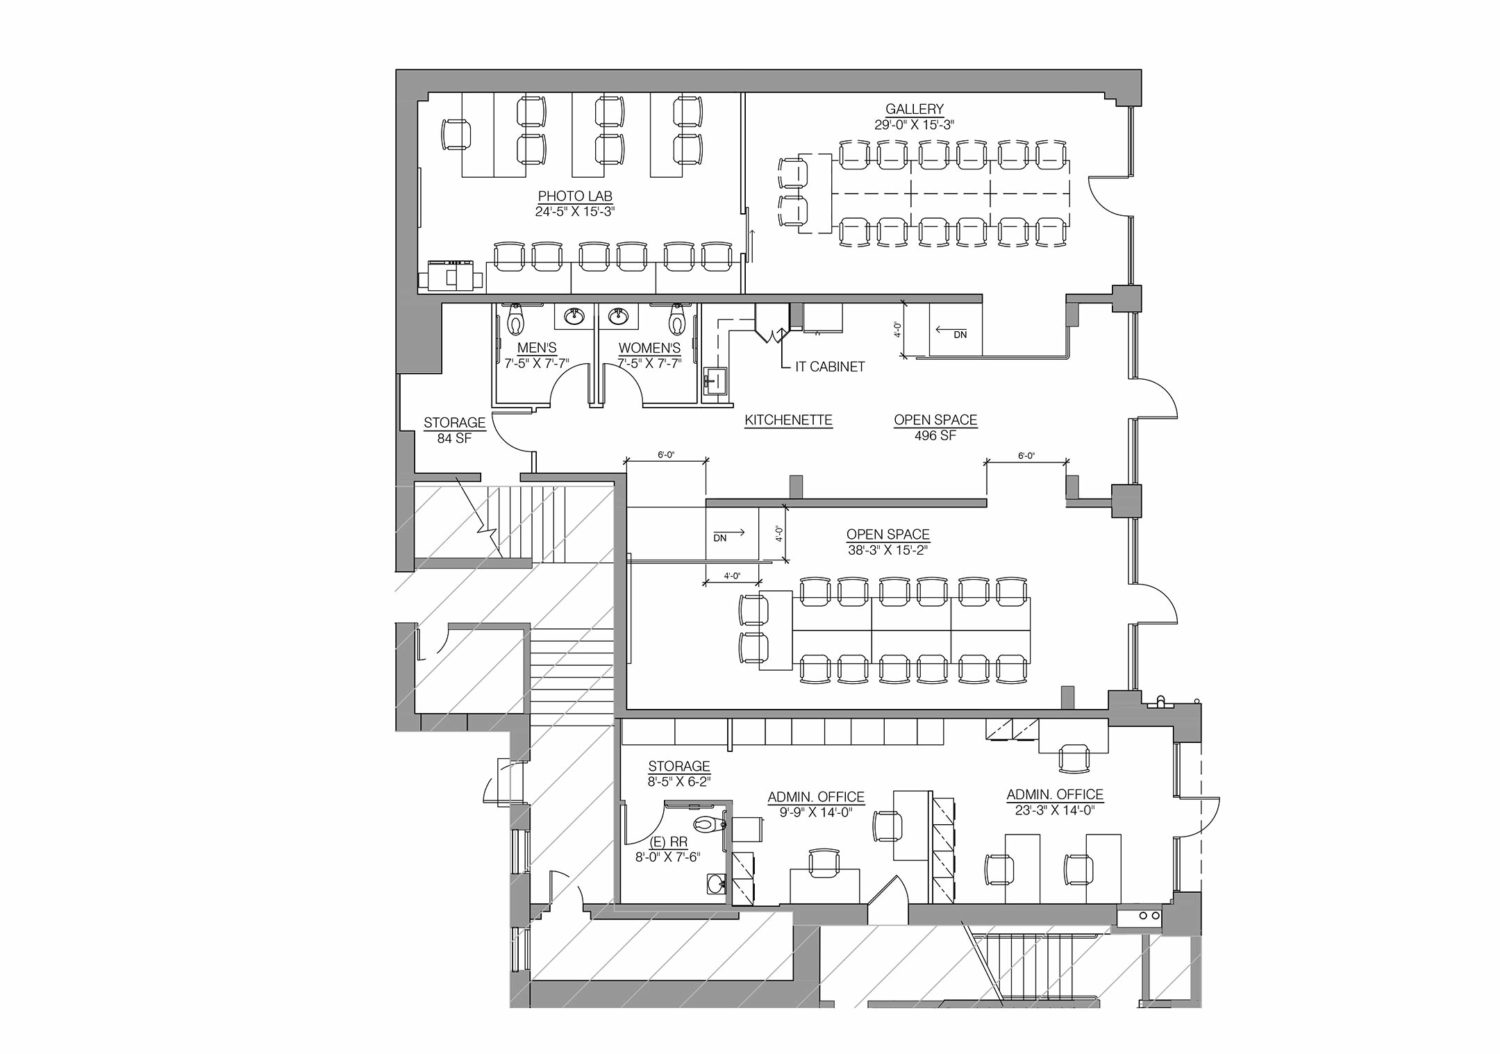 Floor plan of the Los Angeles Center of Photography